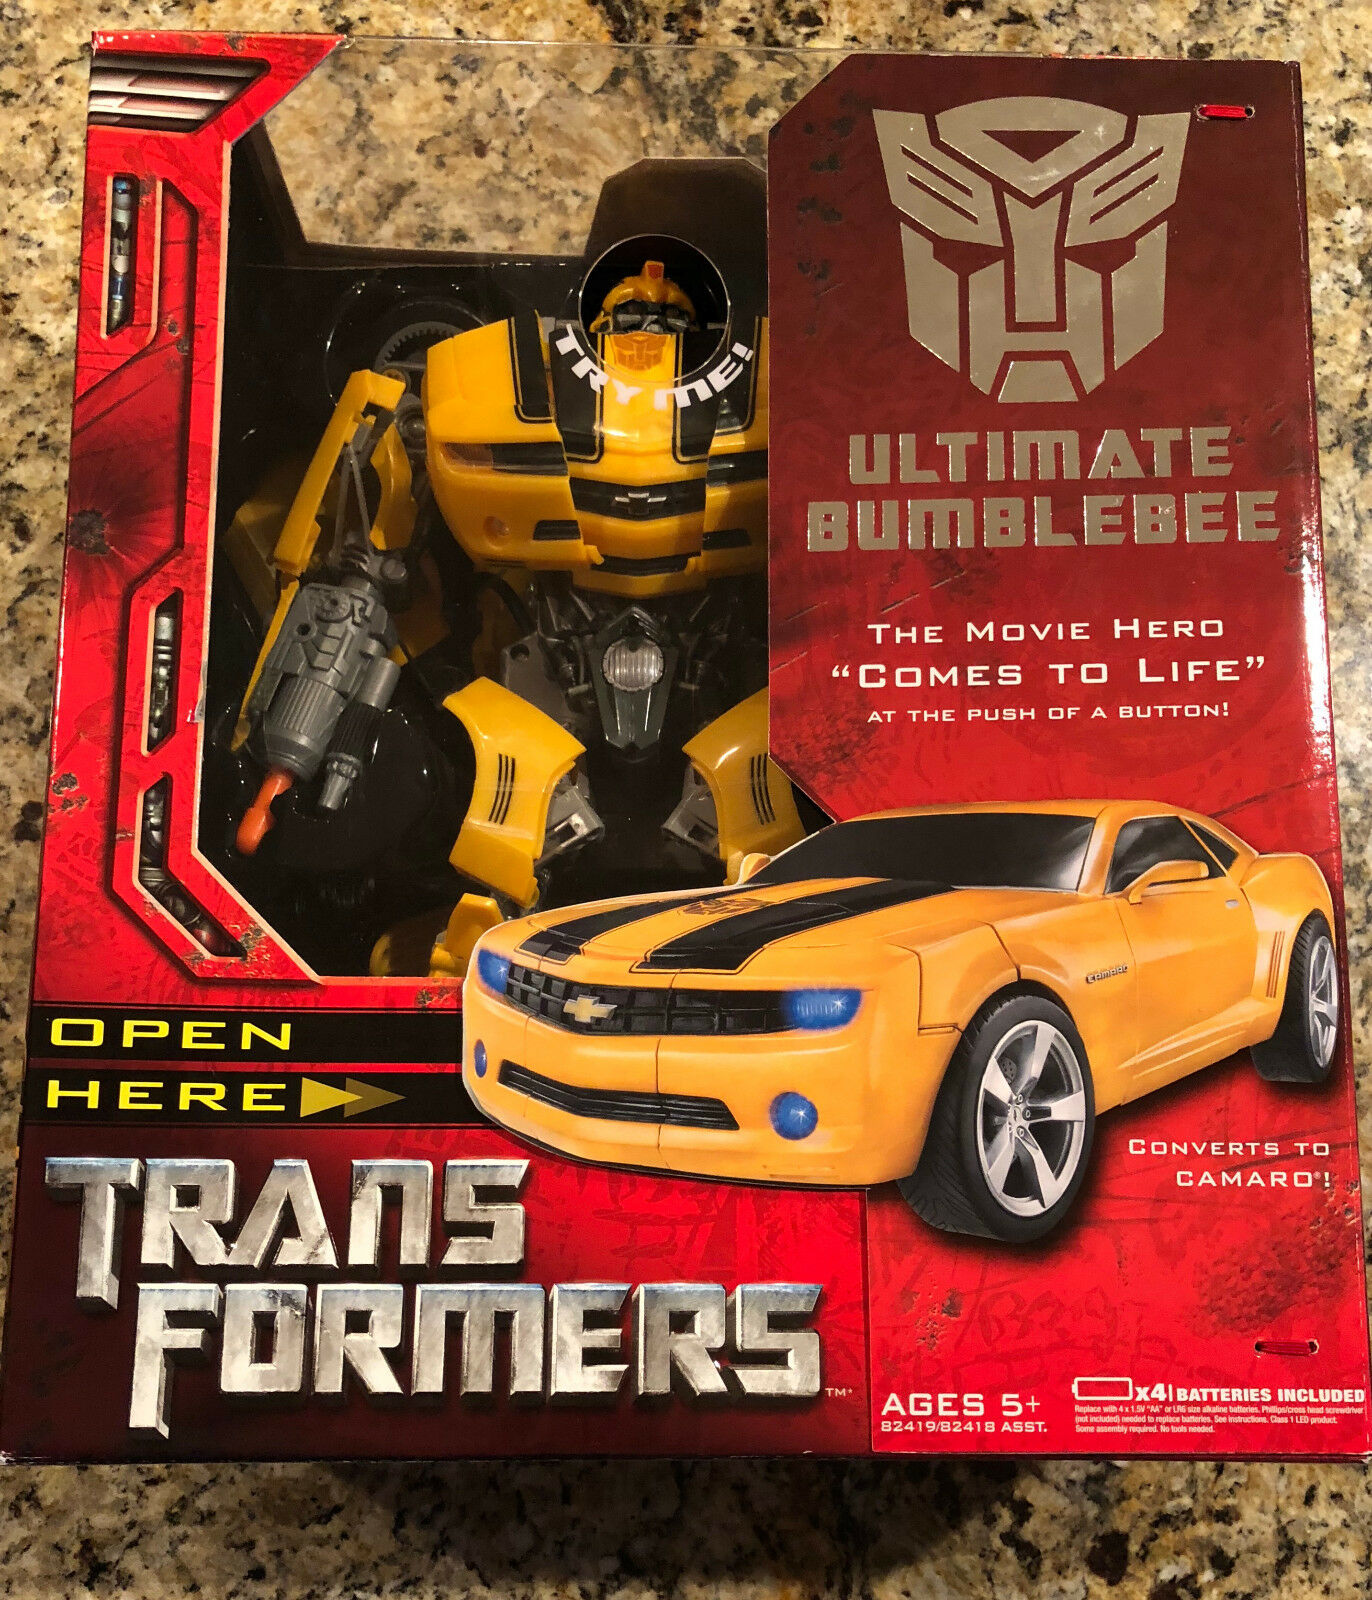 Transformers Ulitimate Bumblebee - New in box - Stands over 14